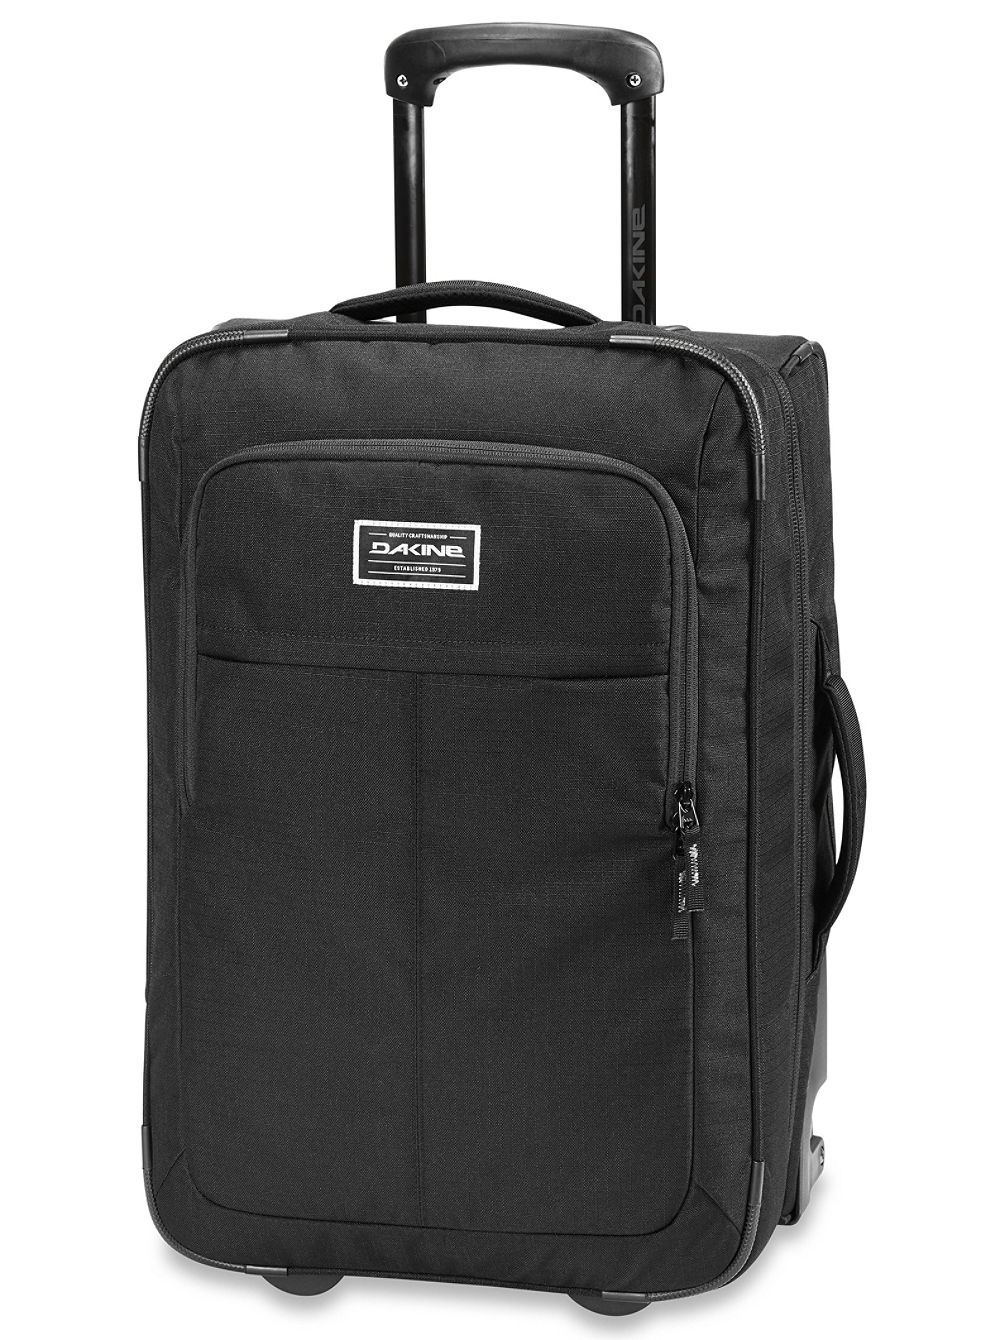 Carry On Roller 42L Travel Bag